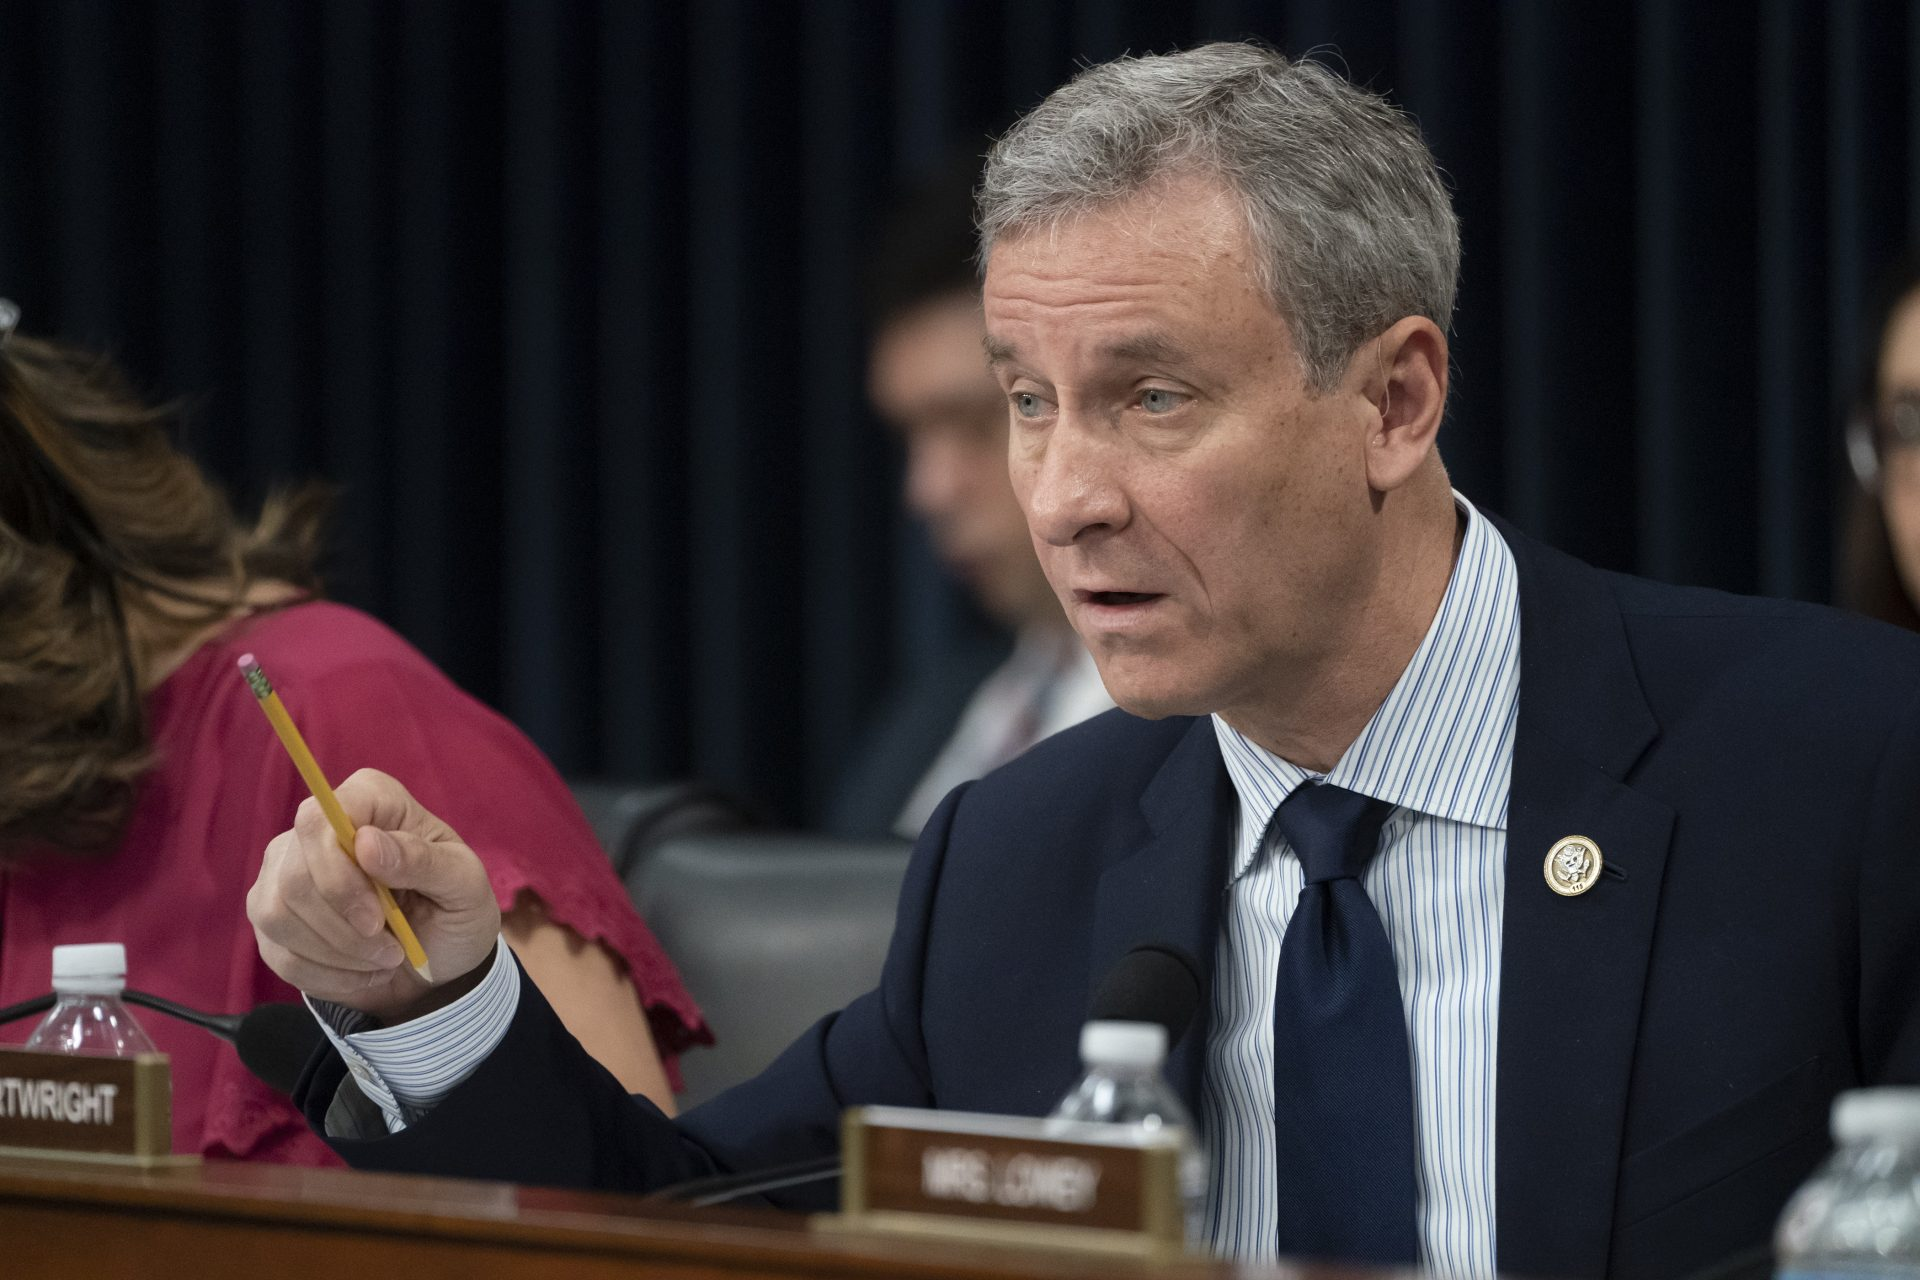 FILE PHOTO: Rep. Matt Cartwright, D-Penn., asks Attorney General William Barr about the Justice Department's lawsuit to strike down the Affordable Care Act, in Washington, Tuesday, April 9, 2019.